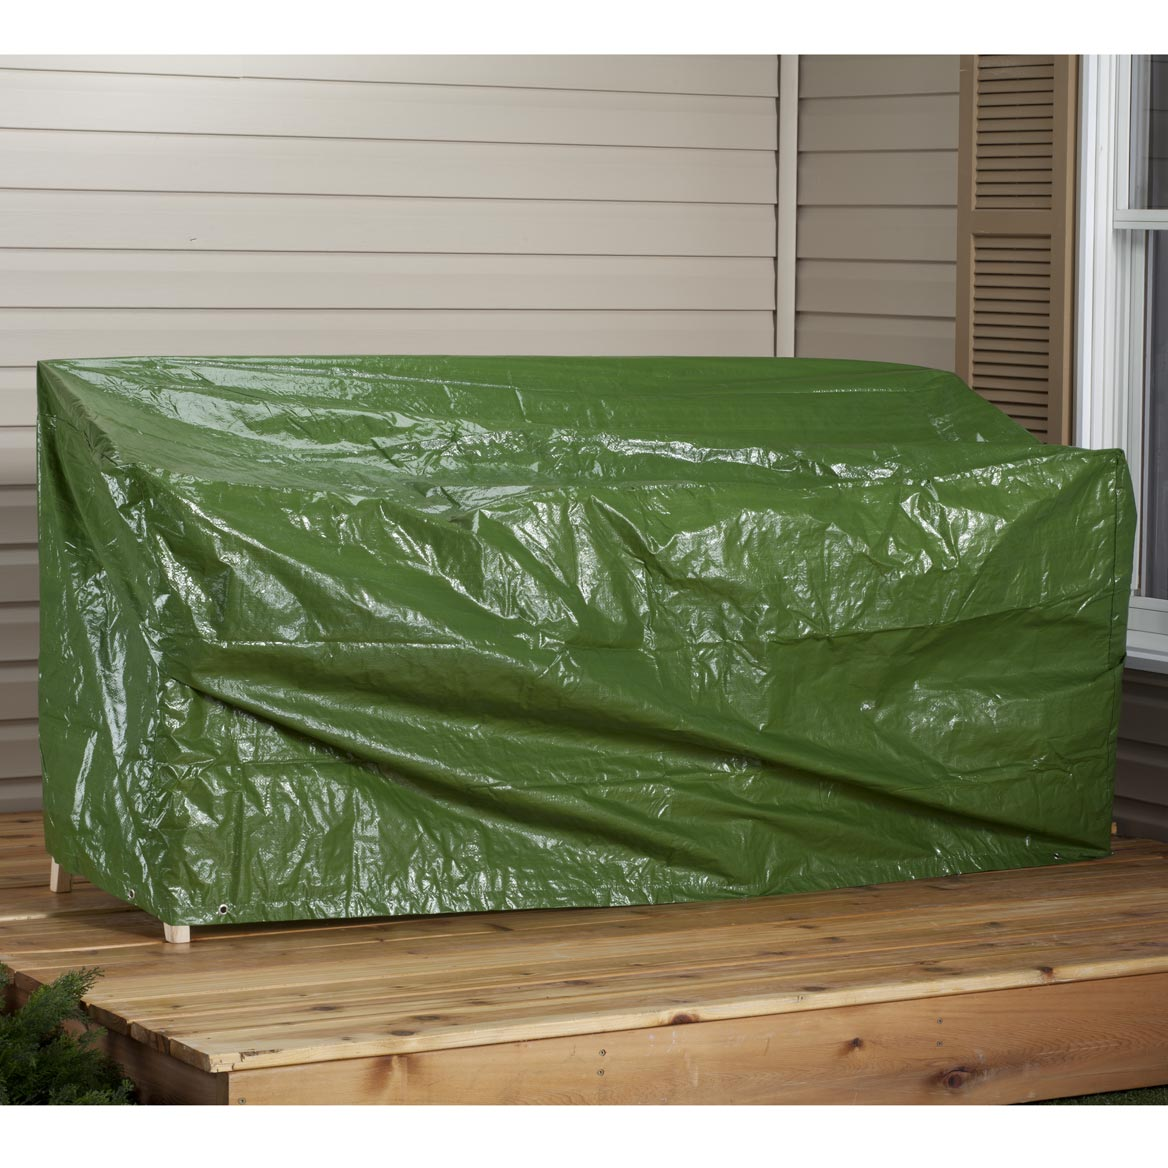 Durable Outdoor Furniture Covers-3-Seat Glider-358354